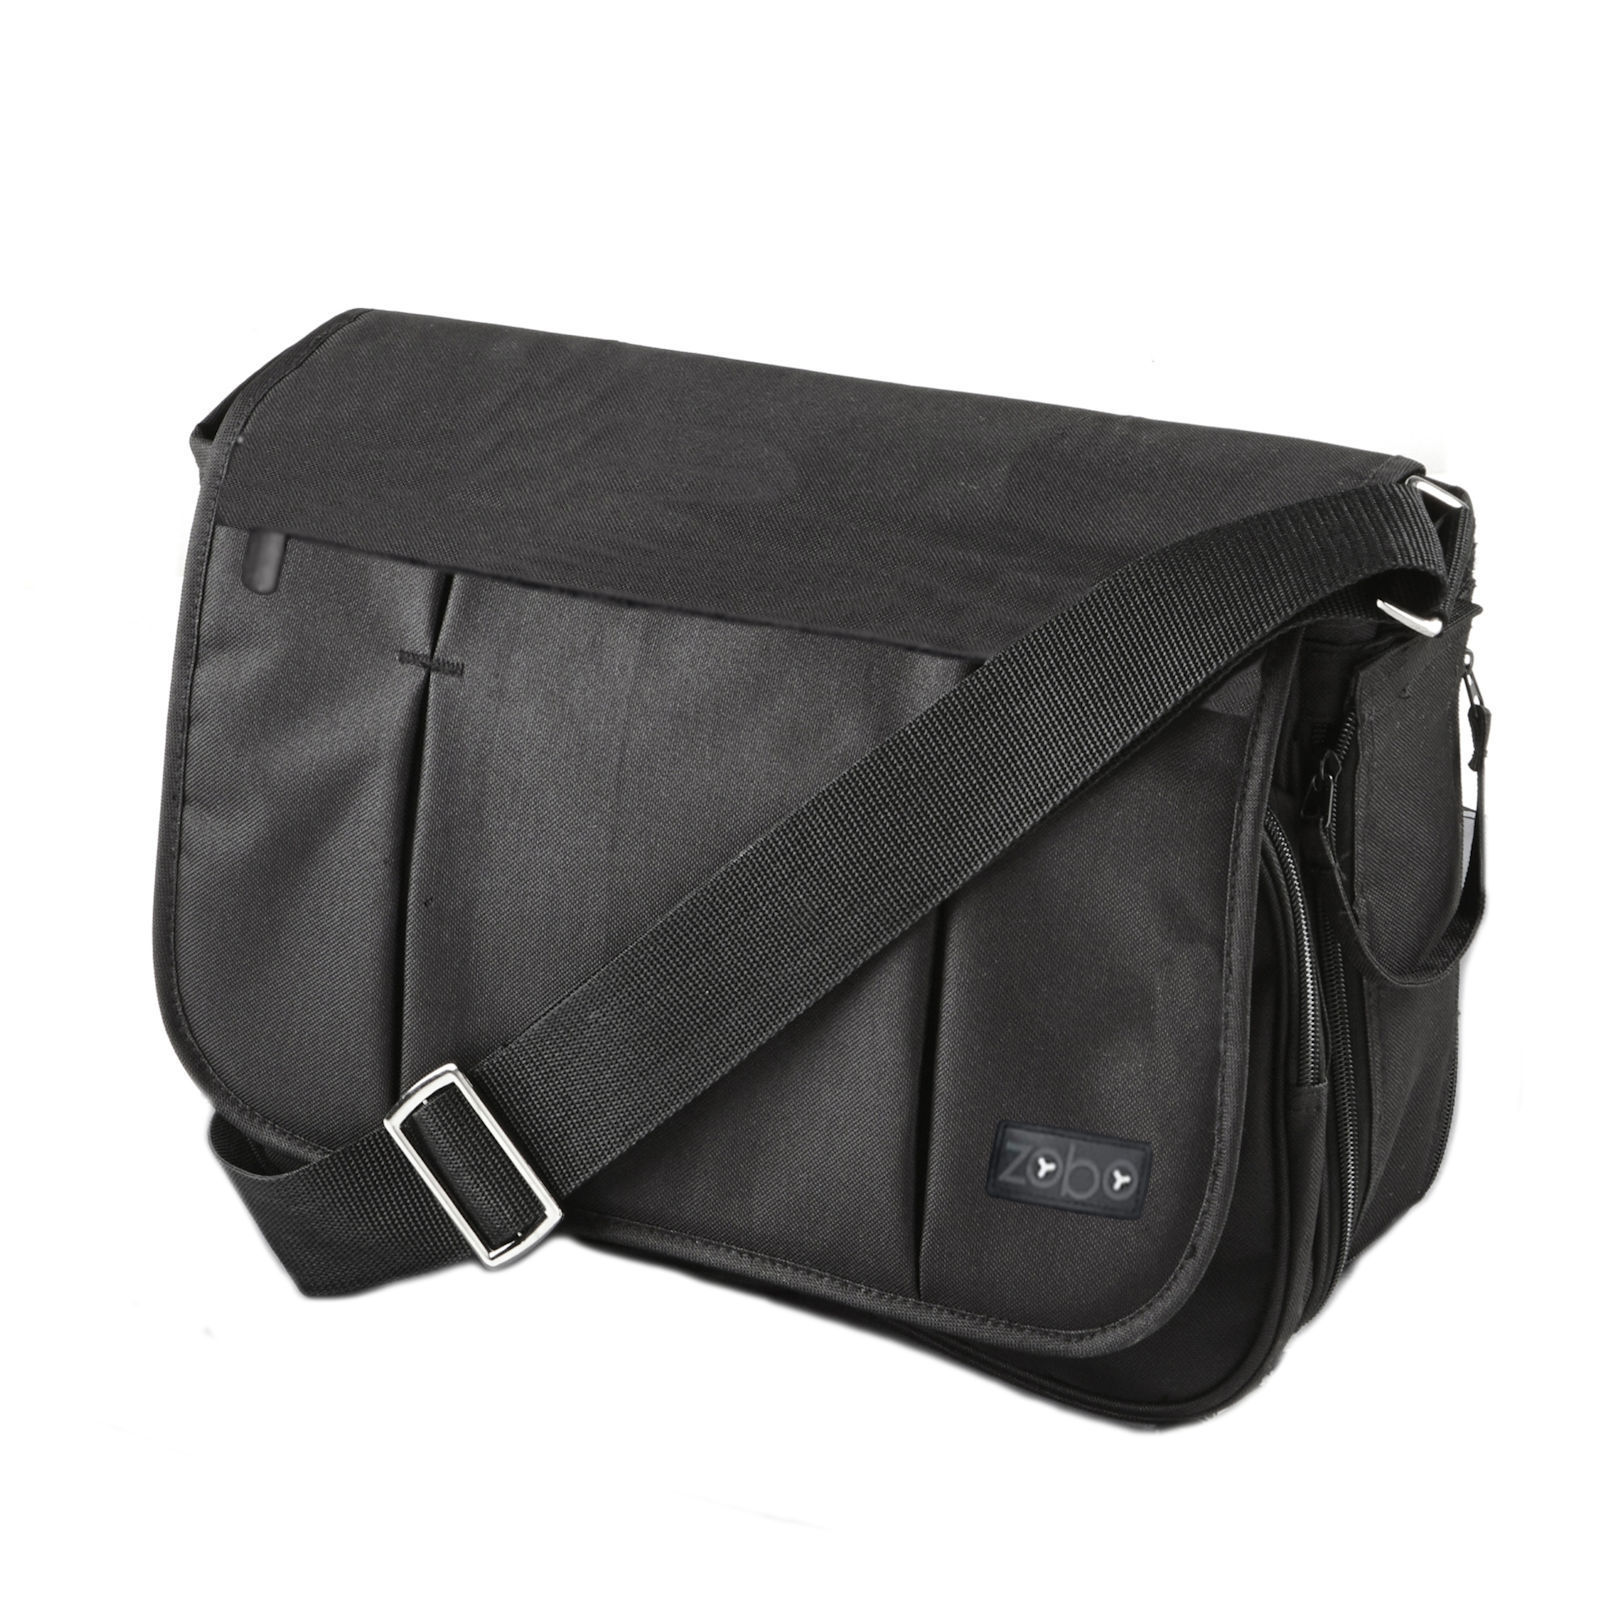 e8ac4956fa360 4baby Zobo Messenger Changing Bag - Black | Buy at Online4baby